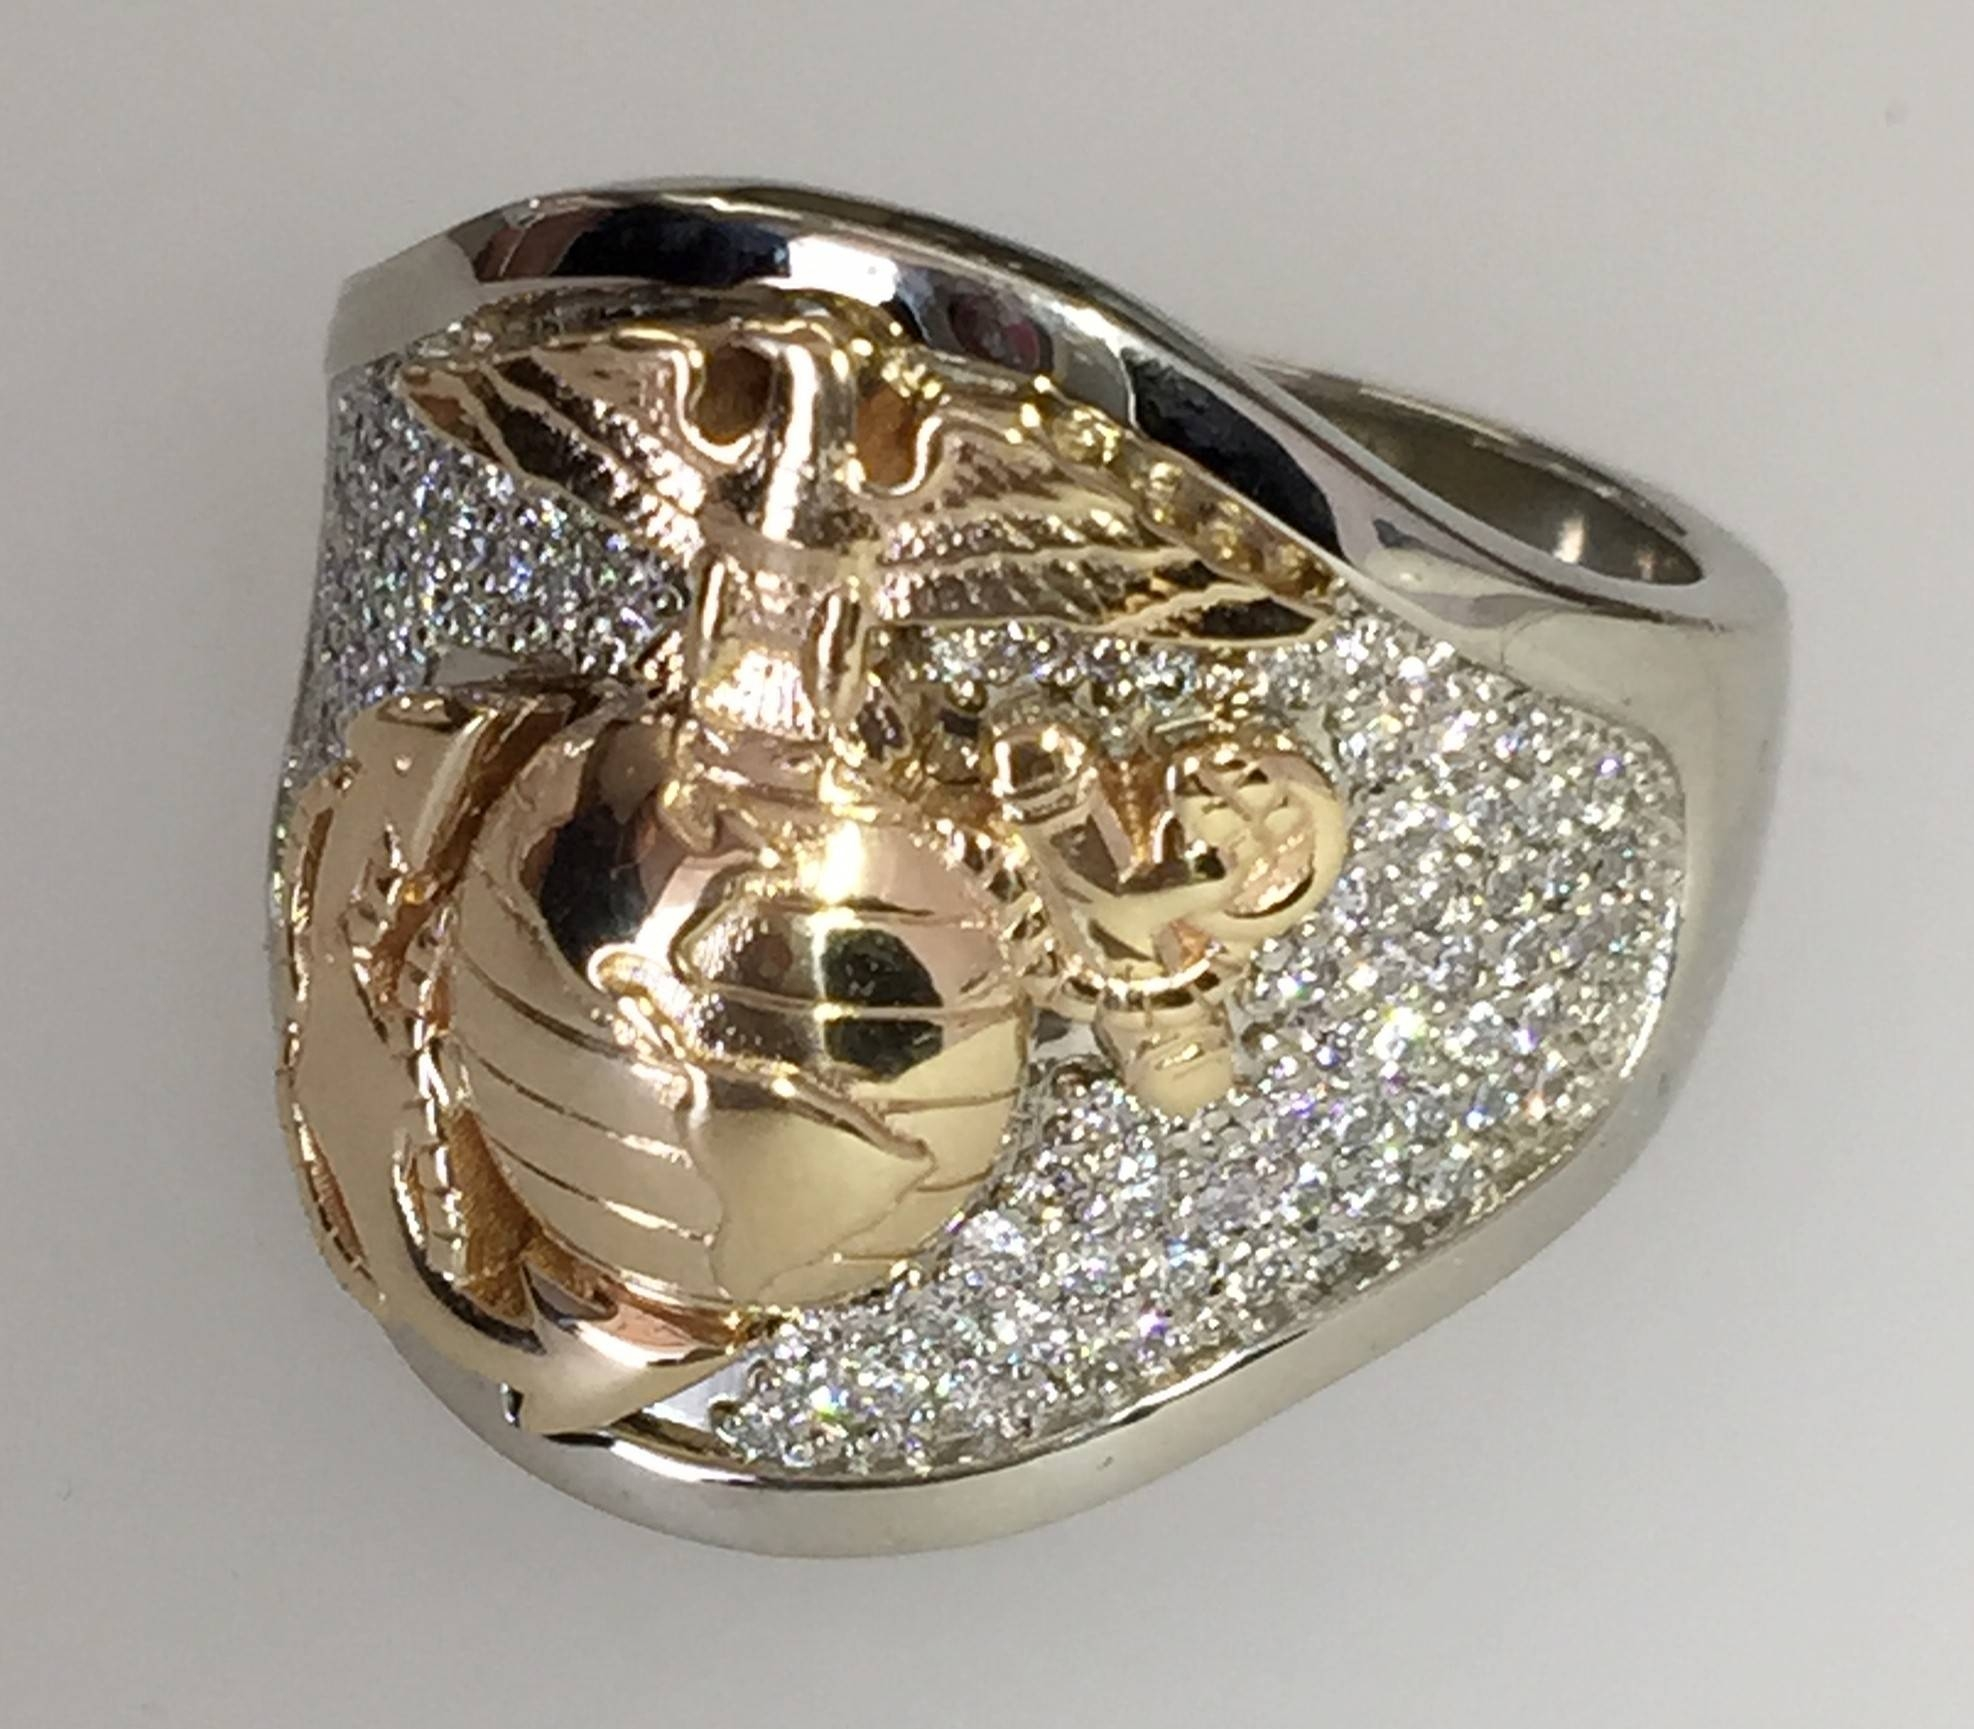 Custom Military Rings Designedusmc Veteran Owned Business And Within Usmc Wedding Bands (View 6 of 15)